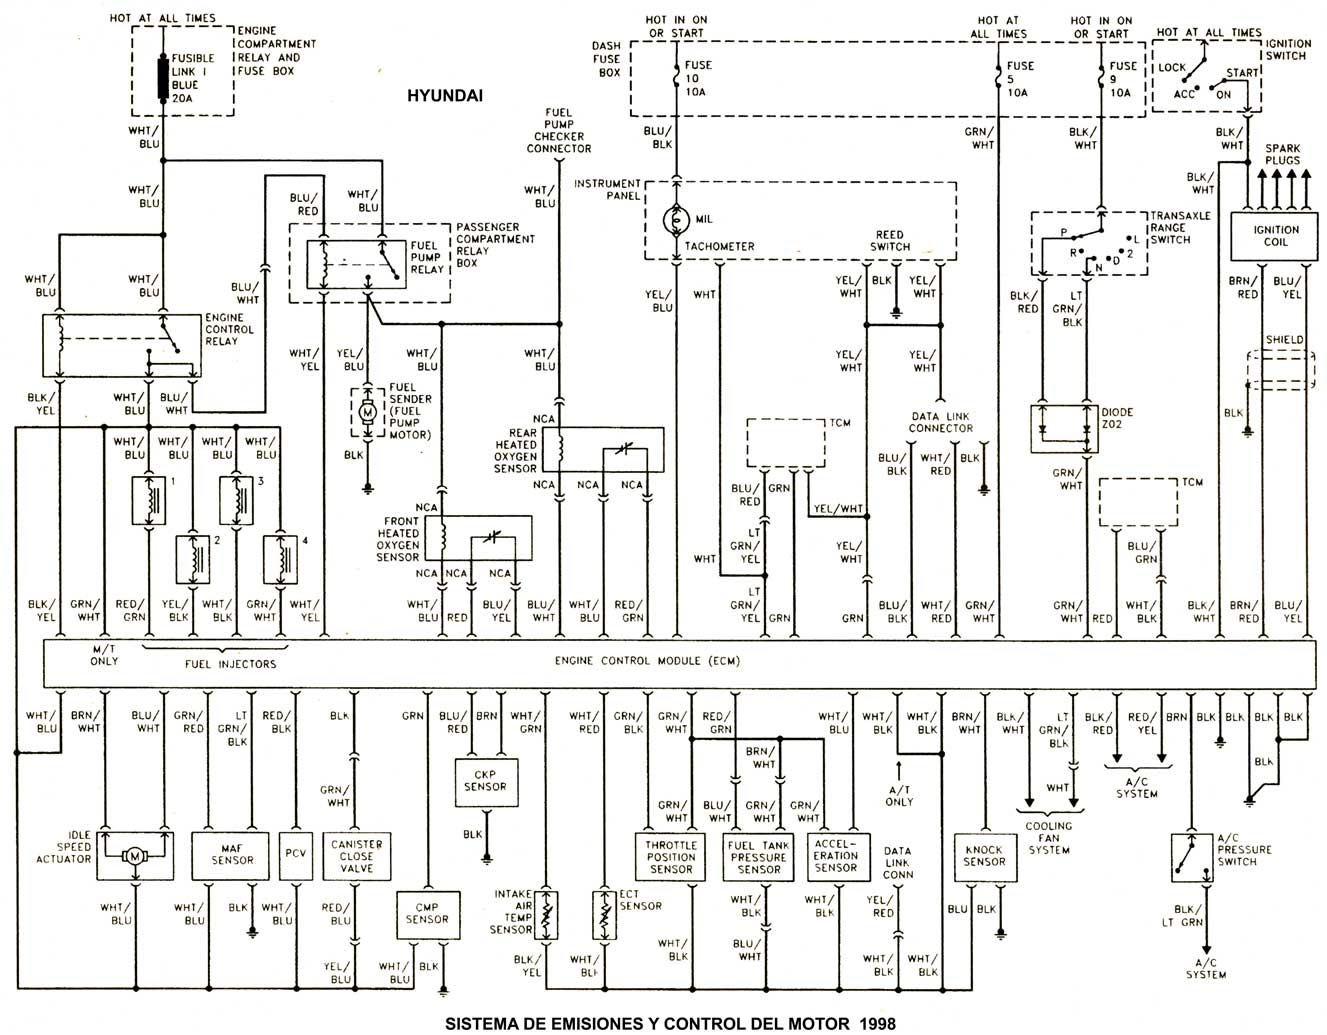 1528091 1993 Ford Escort Location Flasher Unit furthermore Dodge Caravan Fuel Pump Wiring Diagram Html furthermore Pontiac Grand Am 2000 Fuse Box Diagram likewise 2000 Chevy Silverado Brake Line Diagram Throughout Jeep Brake Lines Diagram Jeep Ideas Pinterest On Thebeginnerslens   Graphics additionally 1995 Gmc Sonoma Fuel Diagram. on 1996 dodge dakota fuel pump wiring diagram